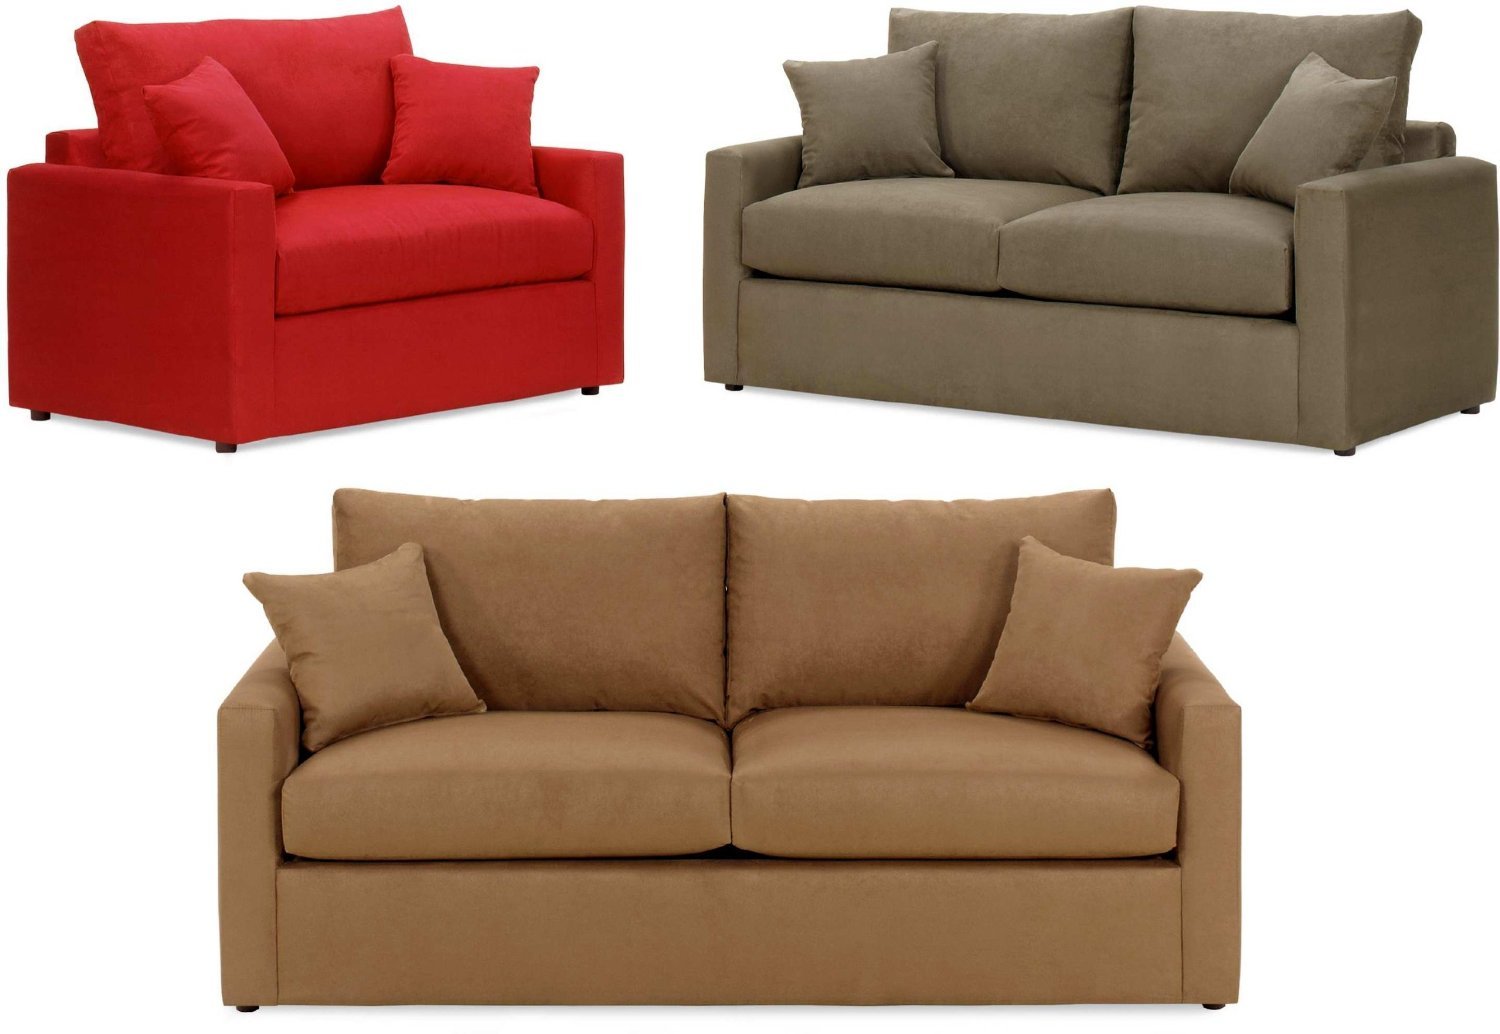 Triple Diffe Color Of Twin Size Sleeper Sofa With Double Pillows